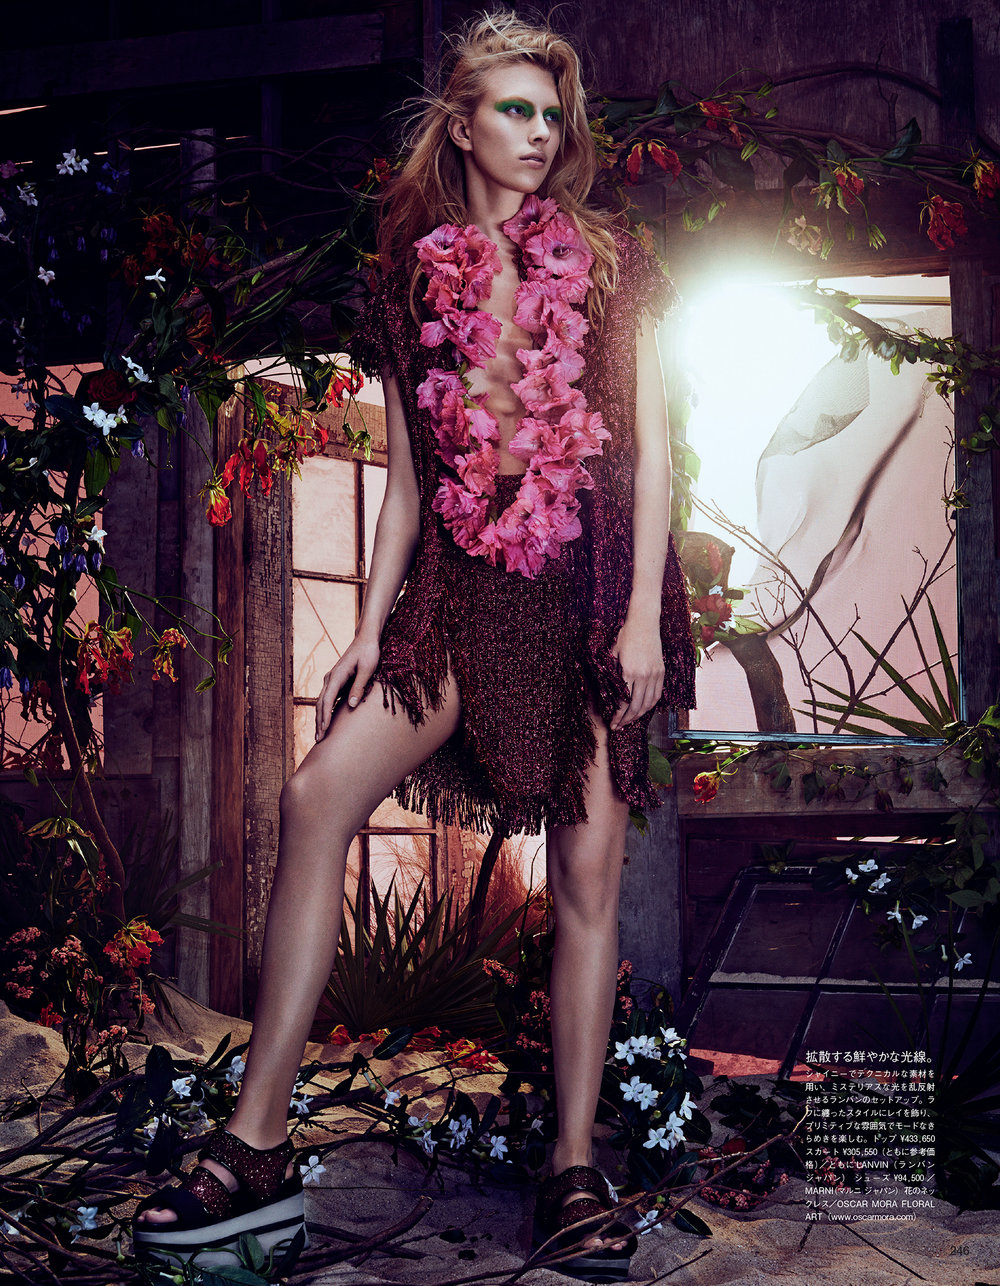 Giovanna-Battaglia-6-Tropical-Heat-Vogue-Japan-Sharif-Hamza.jpg